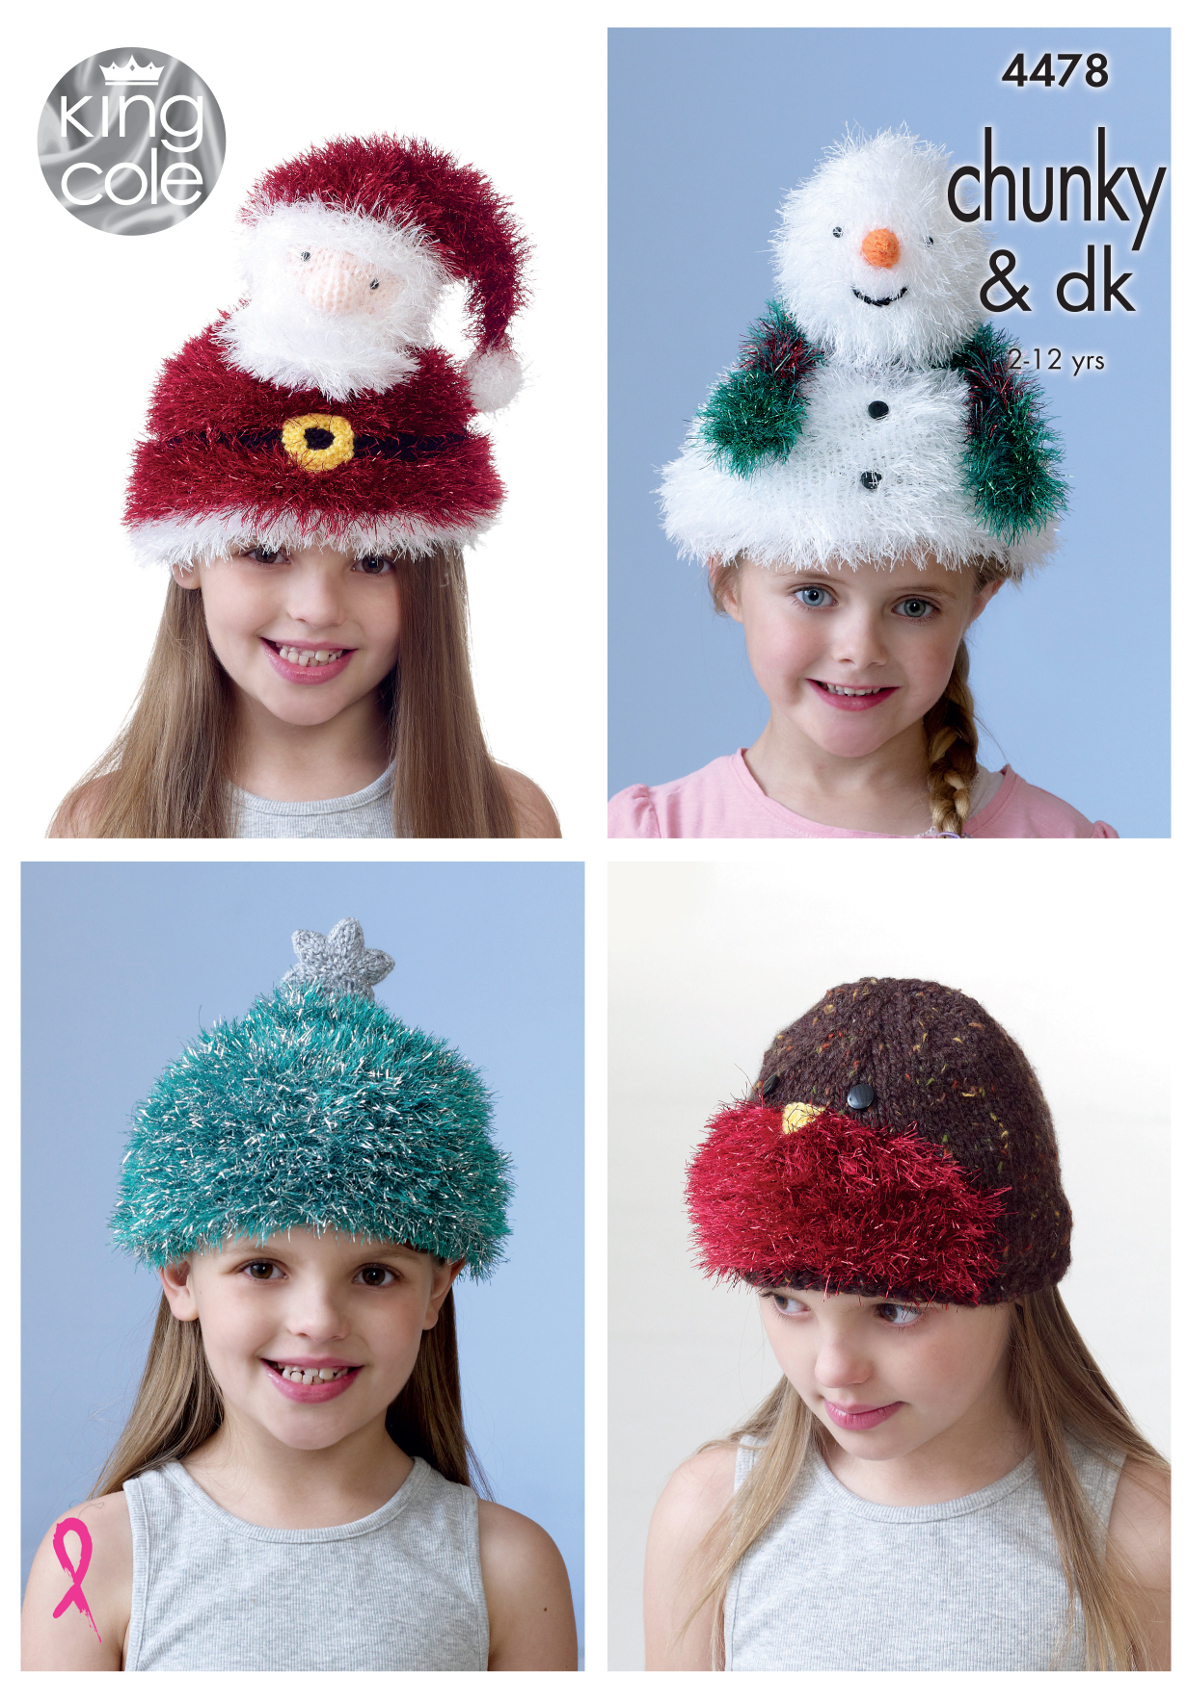 King cole childrens christmas hat knitting pattern santa snowman please look at images below for the chart showing measurements yarn and materials requirement to make this garment bankloansurffo Images